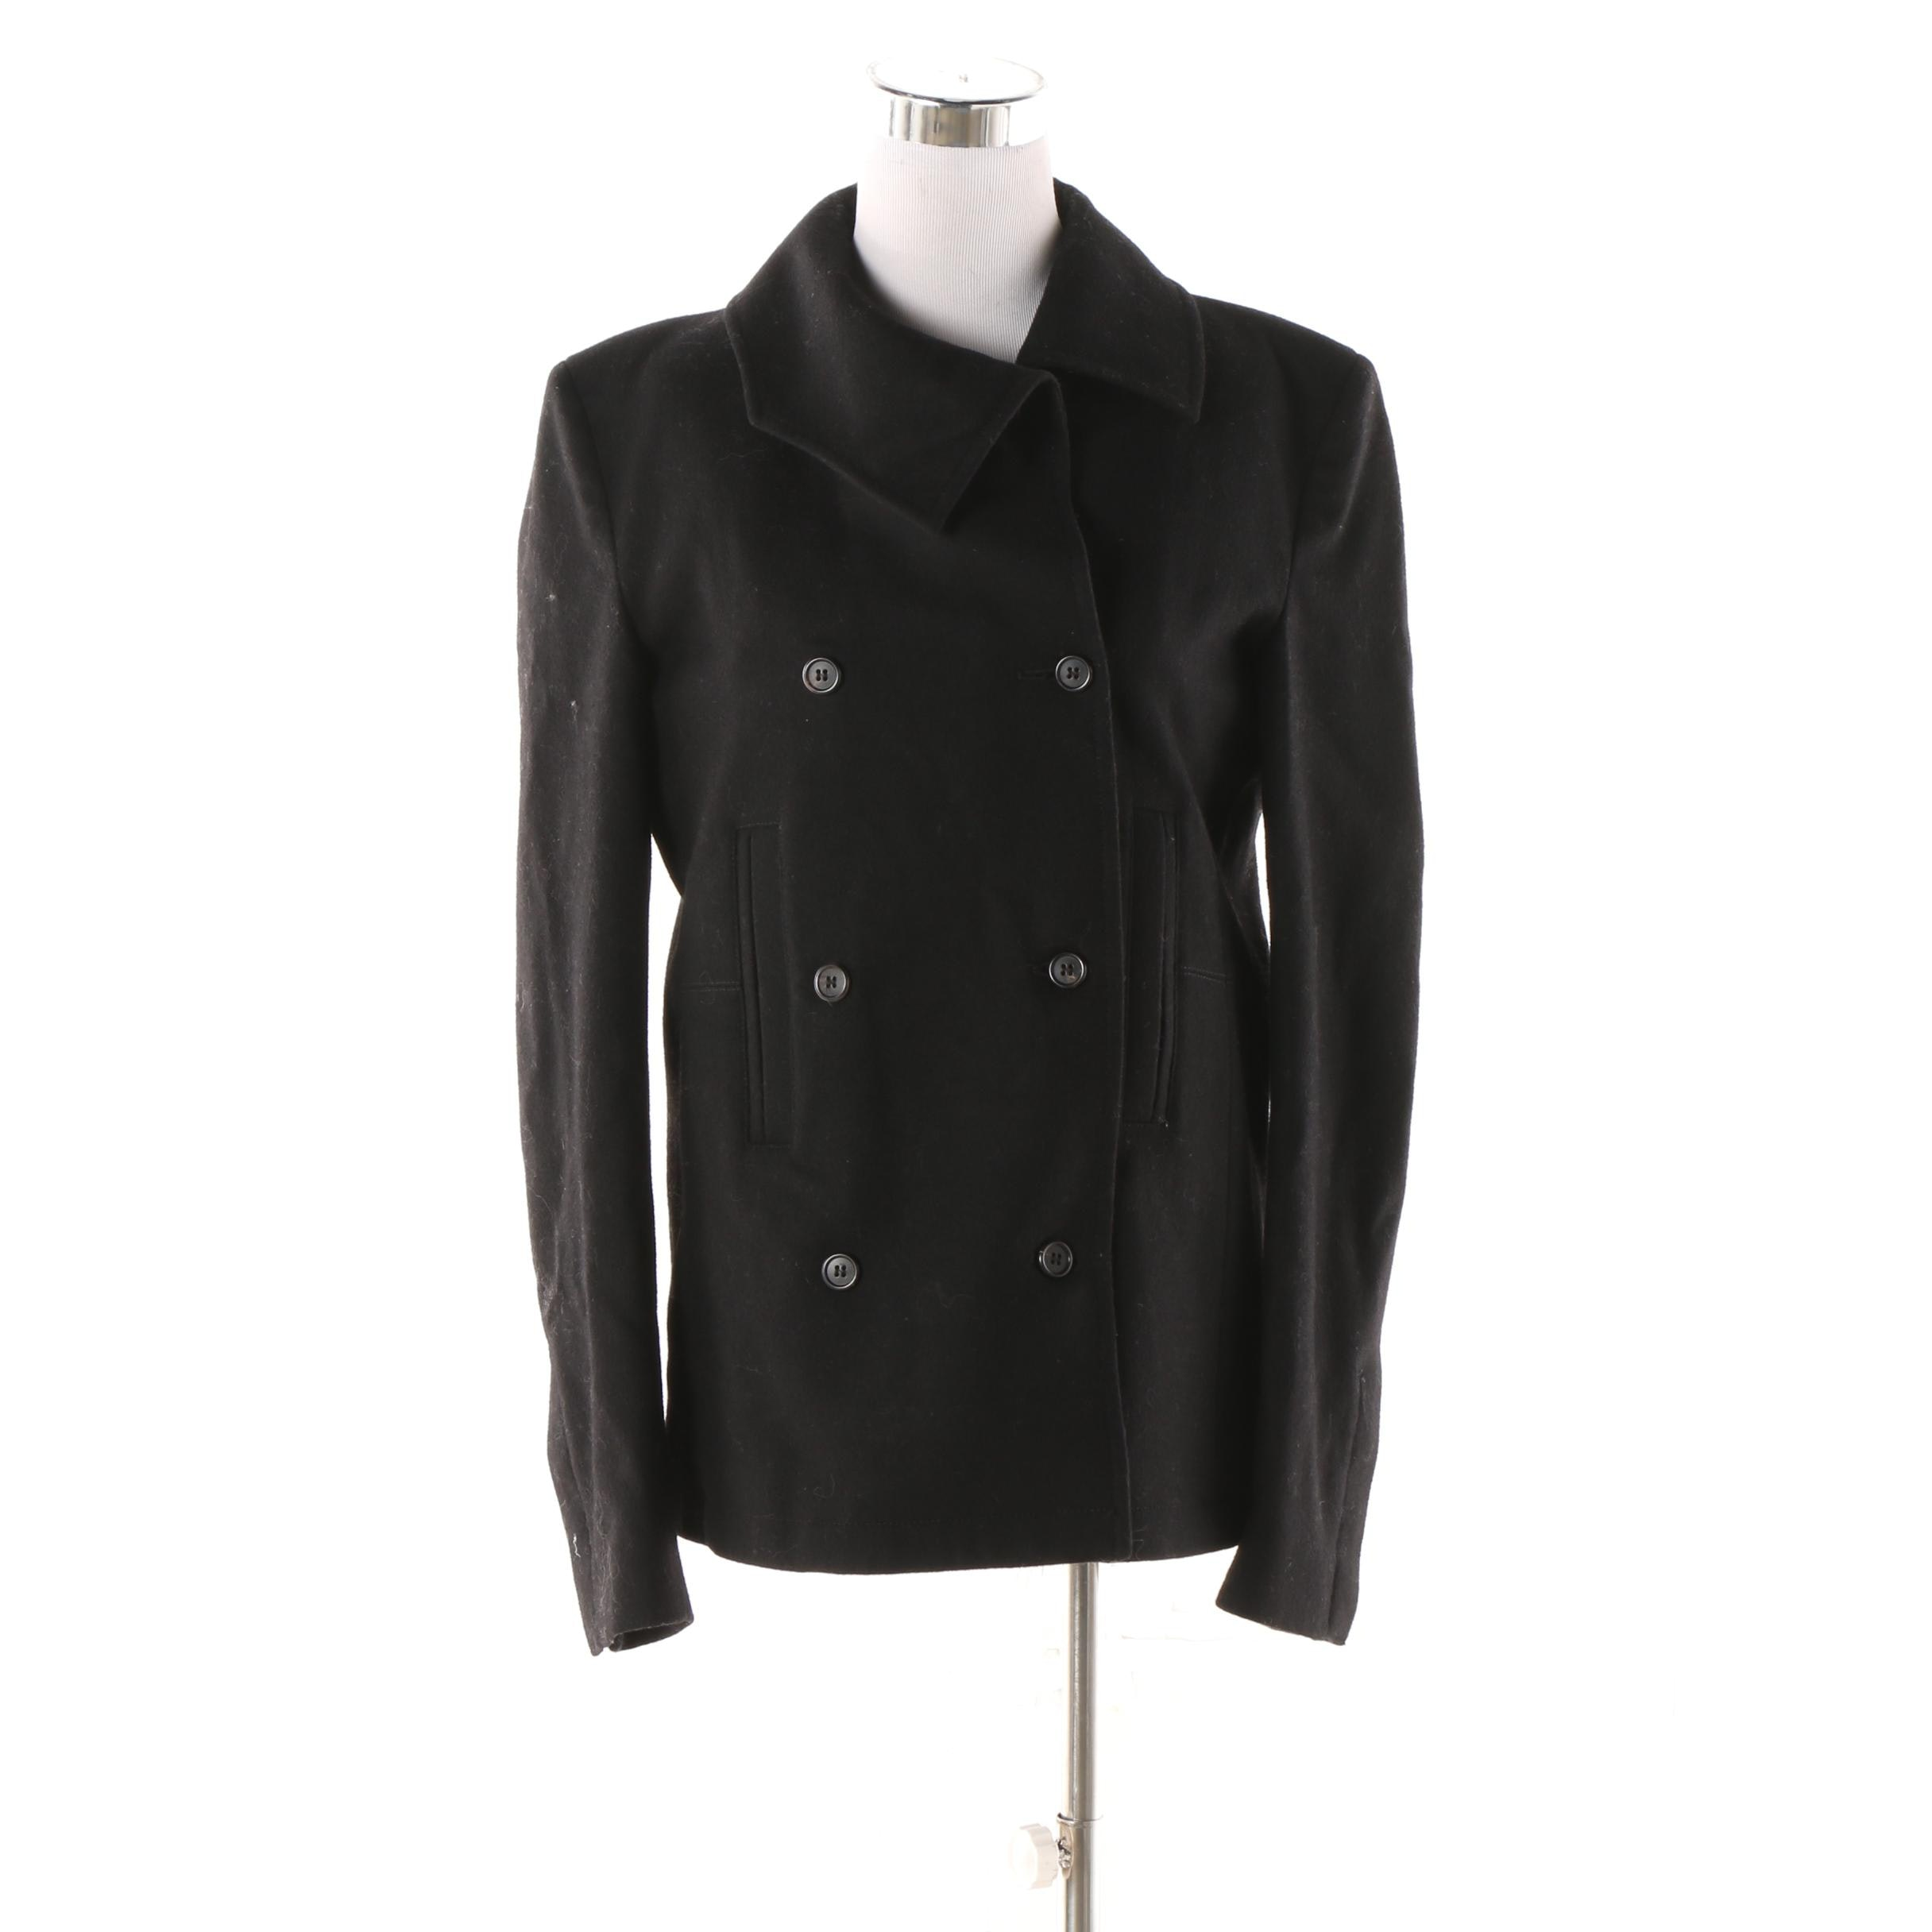 Alexandre Plokhou Black Wool Double-Breasted Jacket, Made in Italy